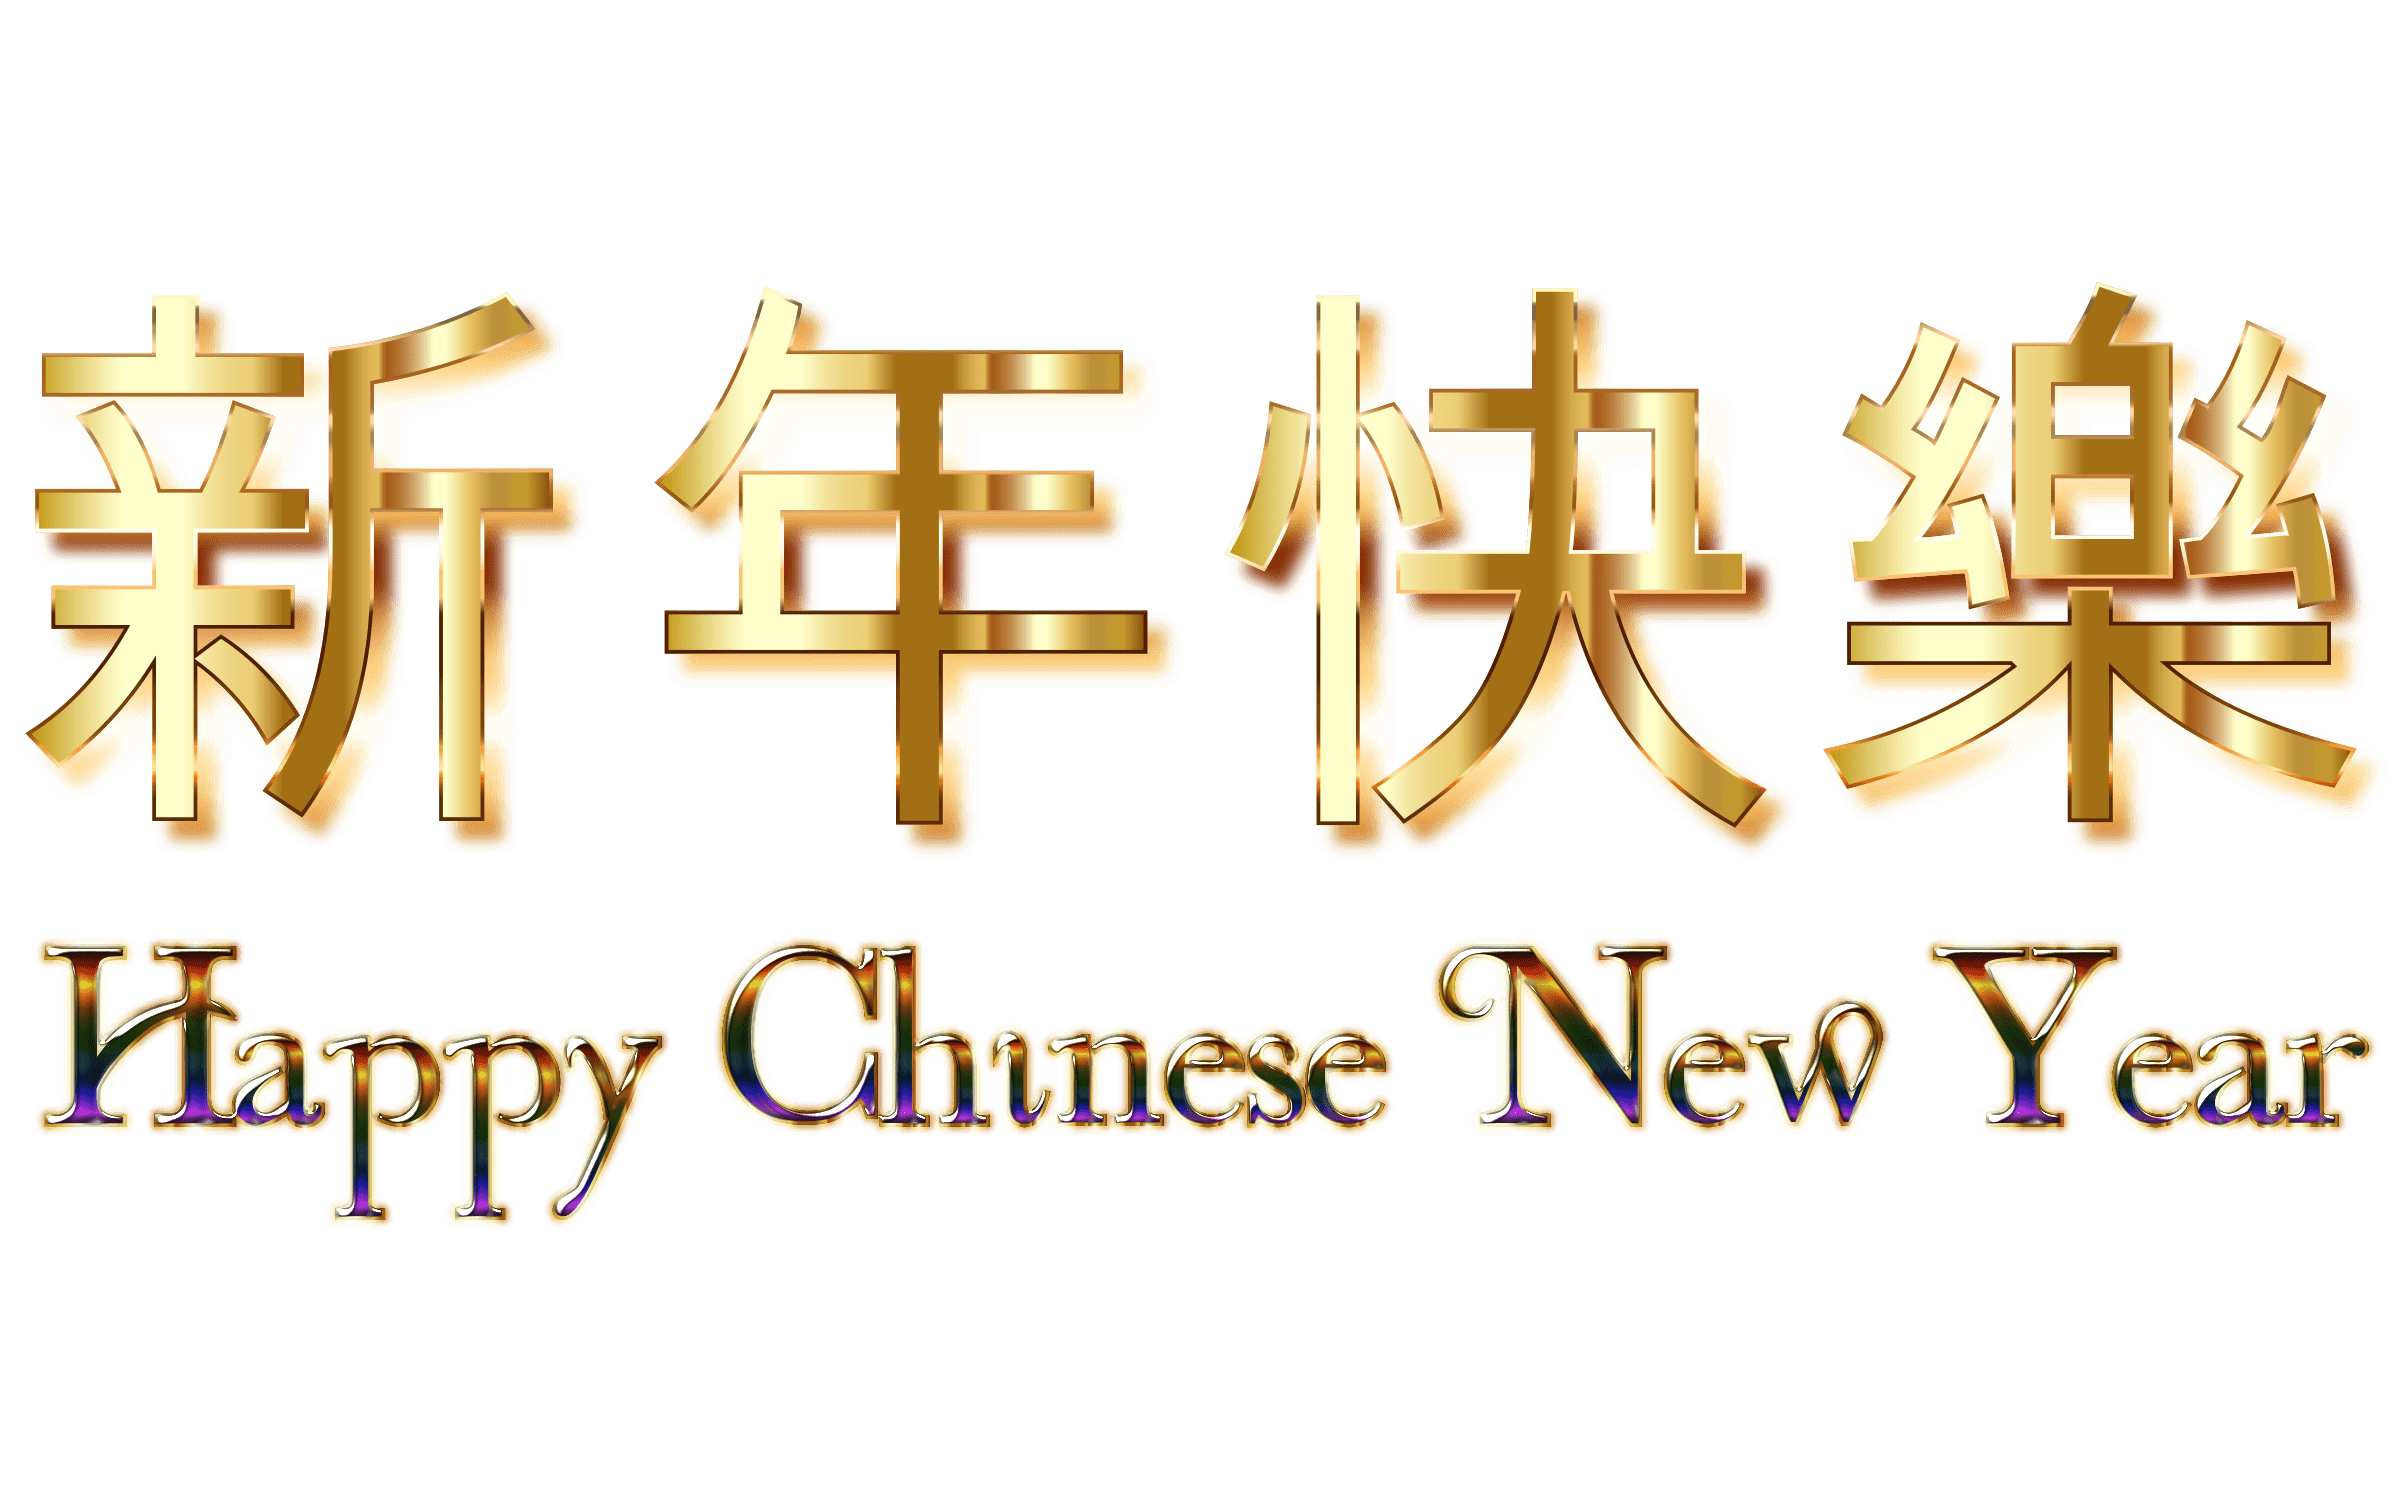 Download · holidays · chinese new year - Chinese New Year HD PNG